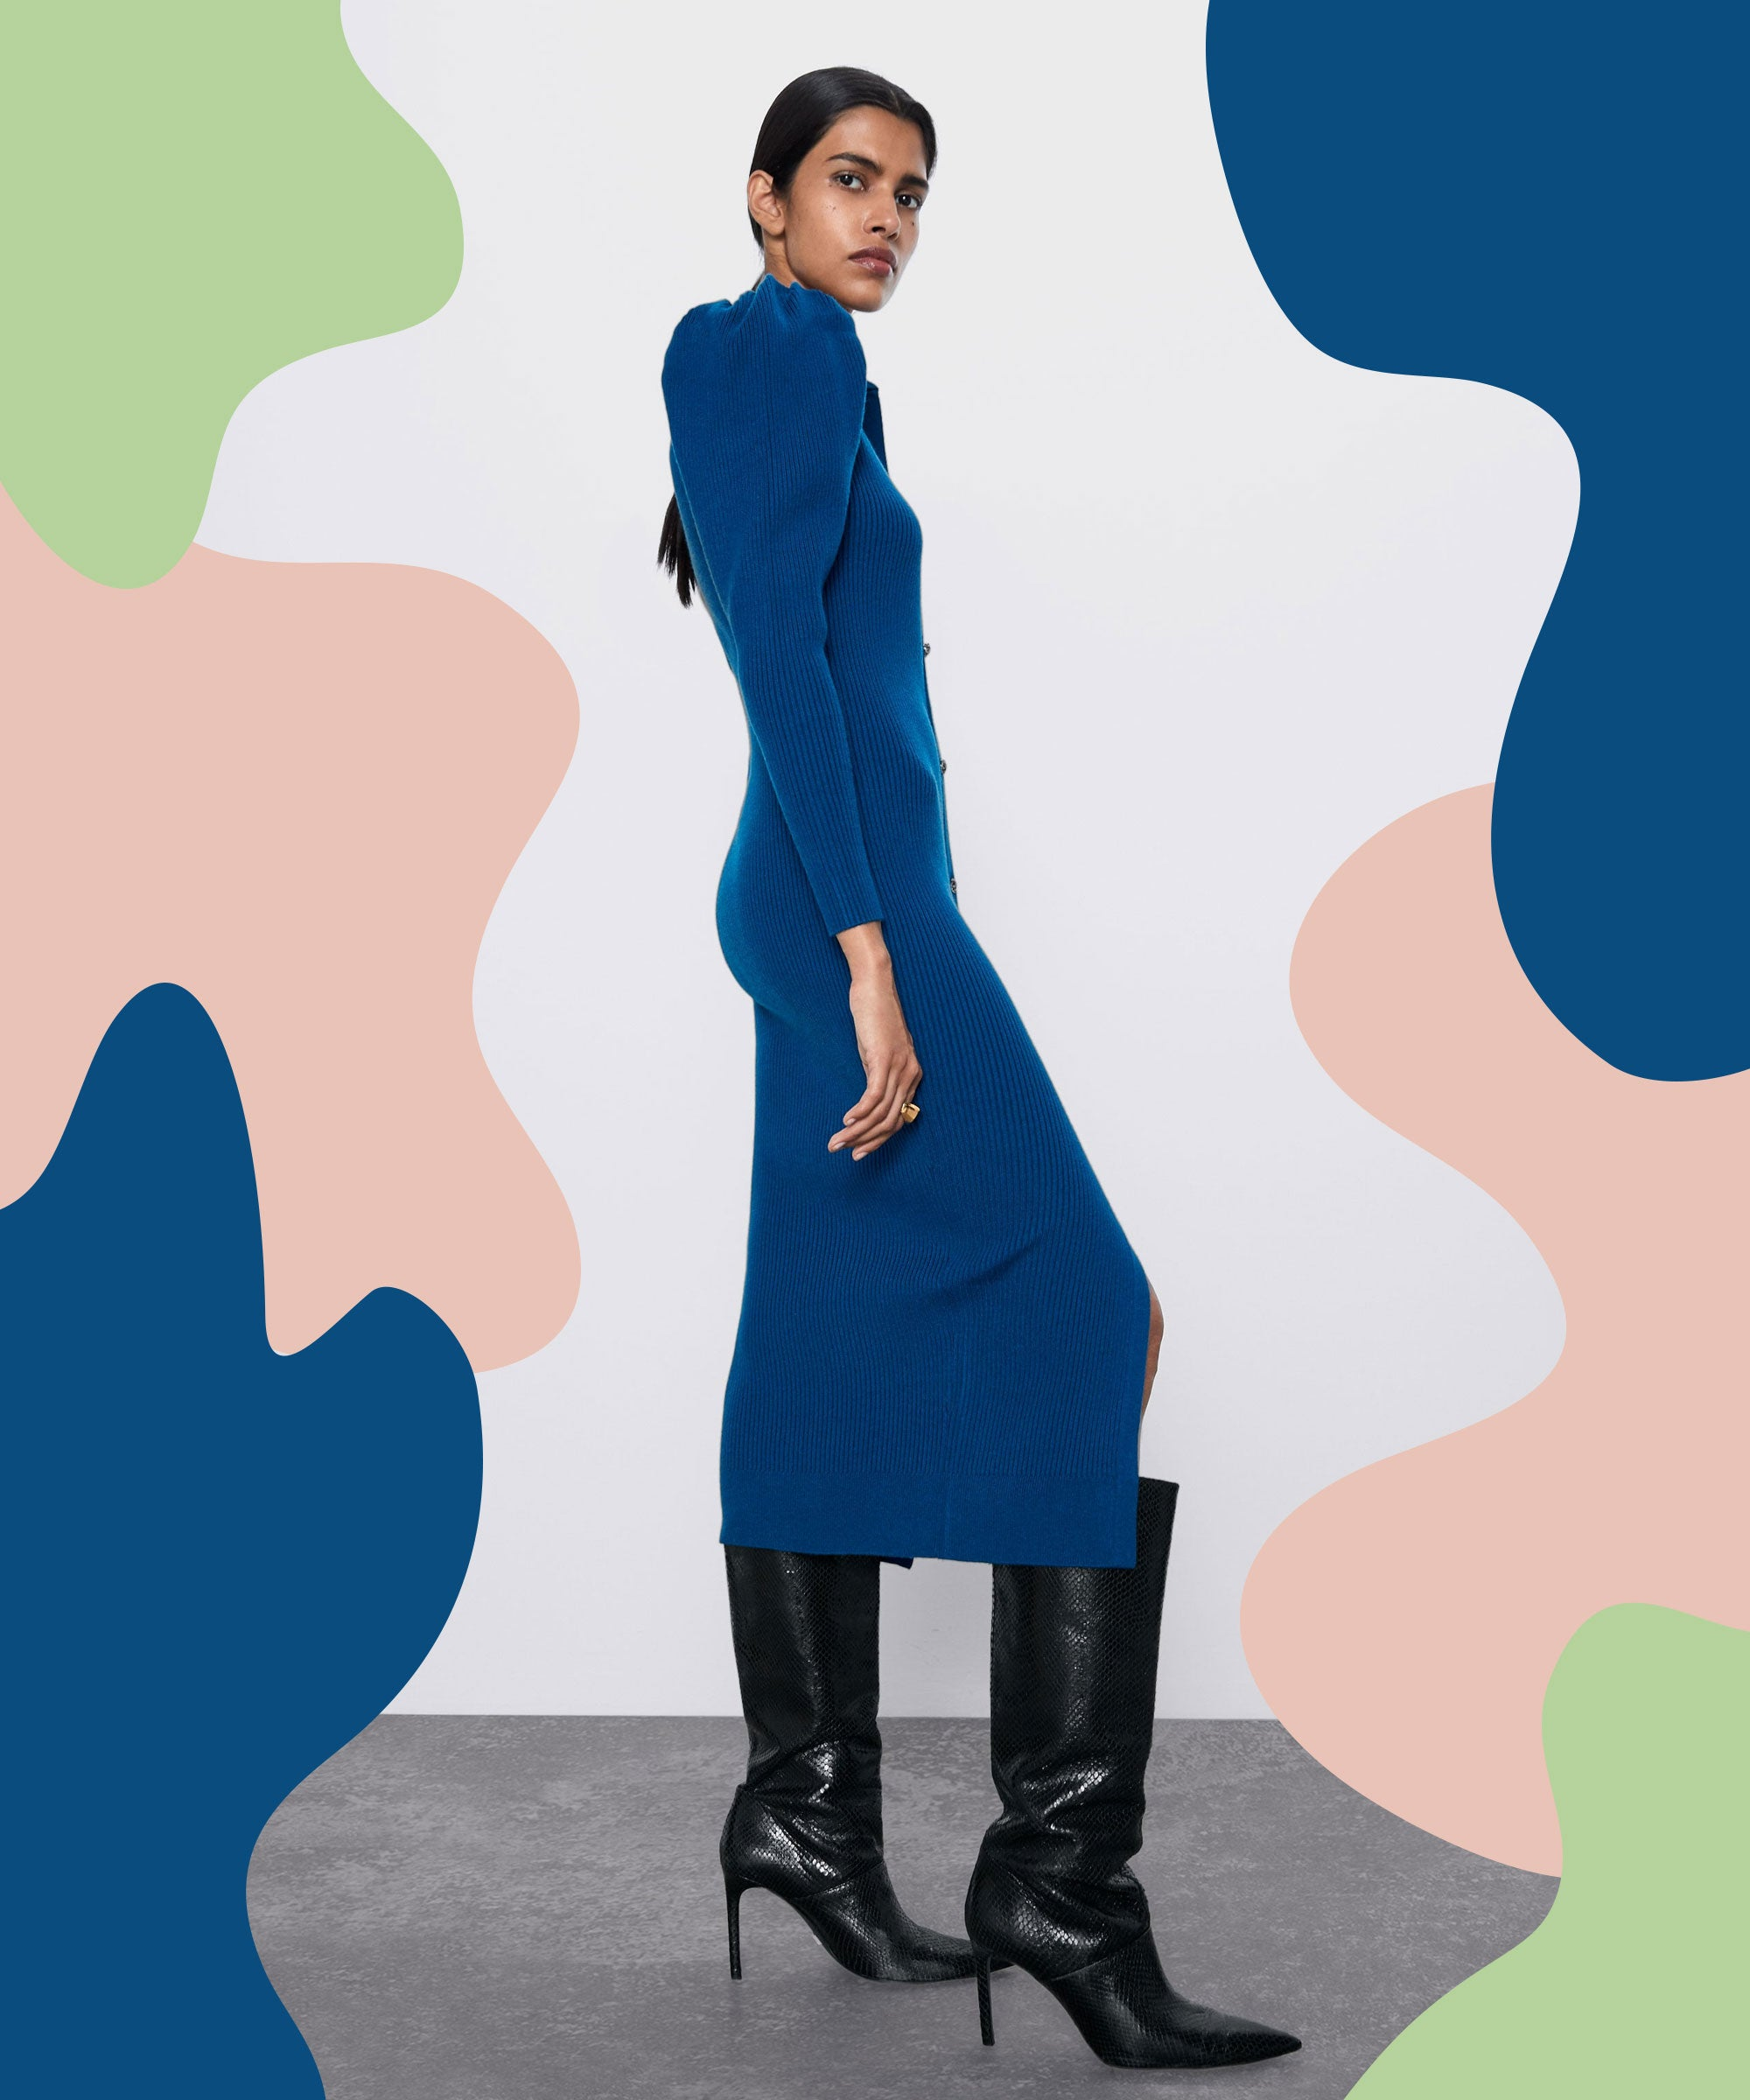 Classic Blue Fashion Items In Pantone Color Of The Year